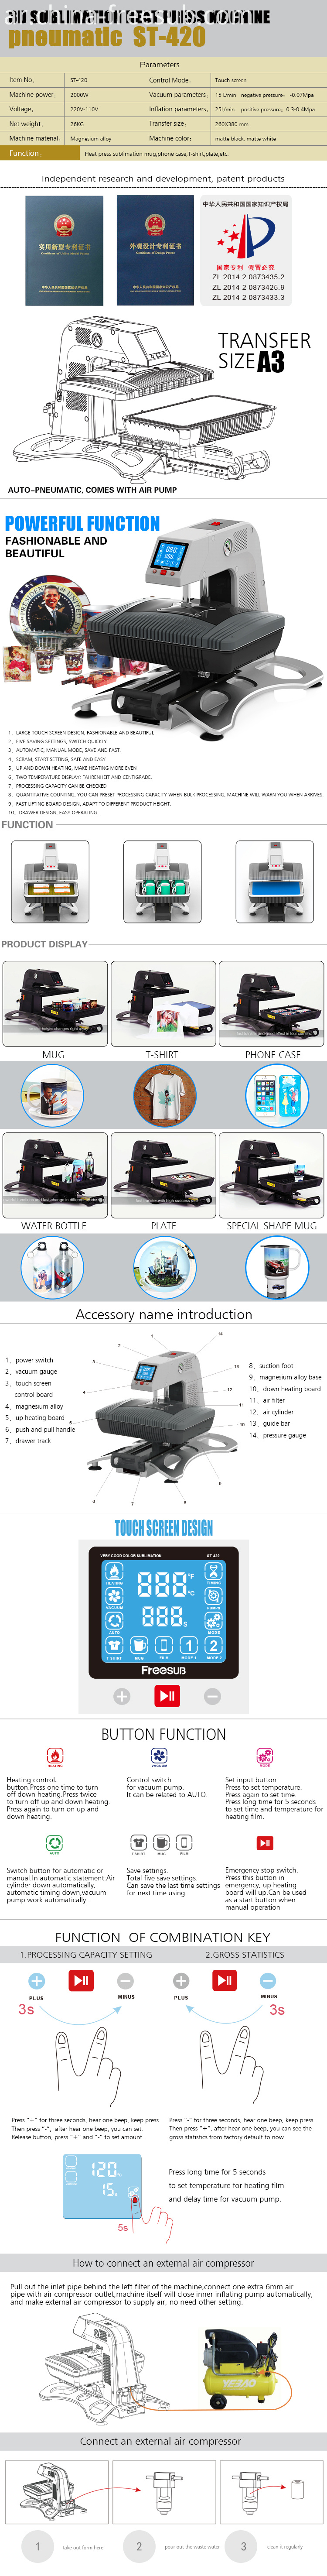 FREESUB Sublimation Personalised Phone Covers Printing Machine